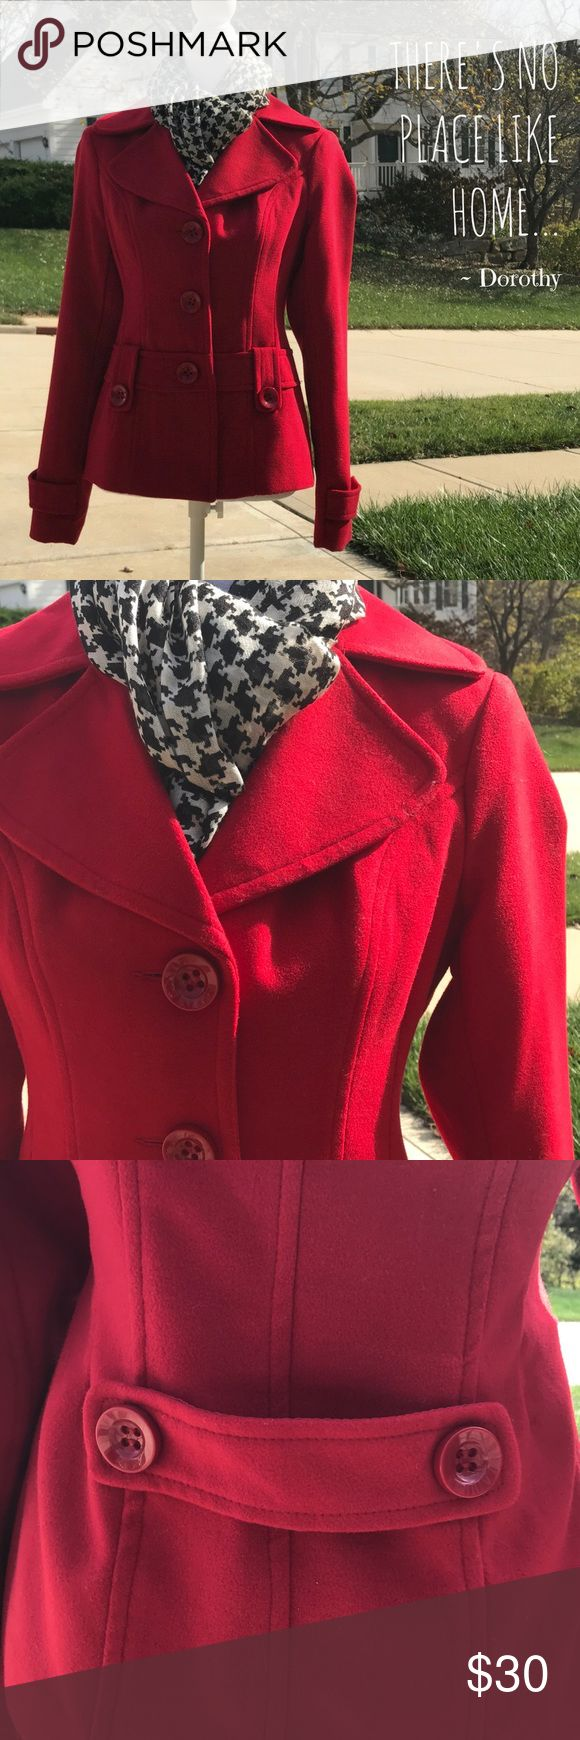 """Simple Chic Sale  Red Pea Coat Beautiful Red Peacoat in pristine condition. Size Medium. Measures 18"""" armpit to armpit laying flat. Length from upper shoulder seam to bottom hem is 23"""". 100% Polyester. Dry clean. Jackets & Coats Pea Coats"""